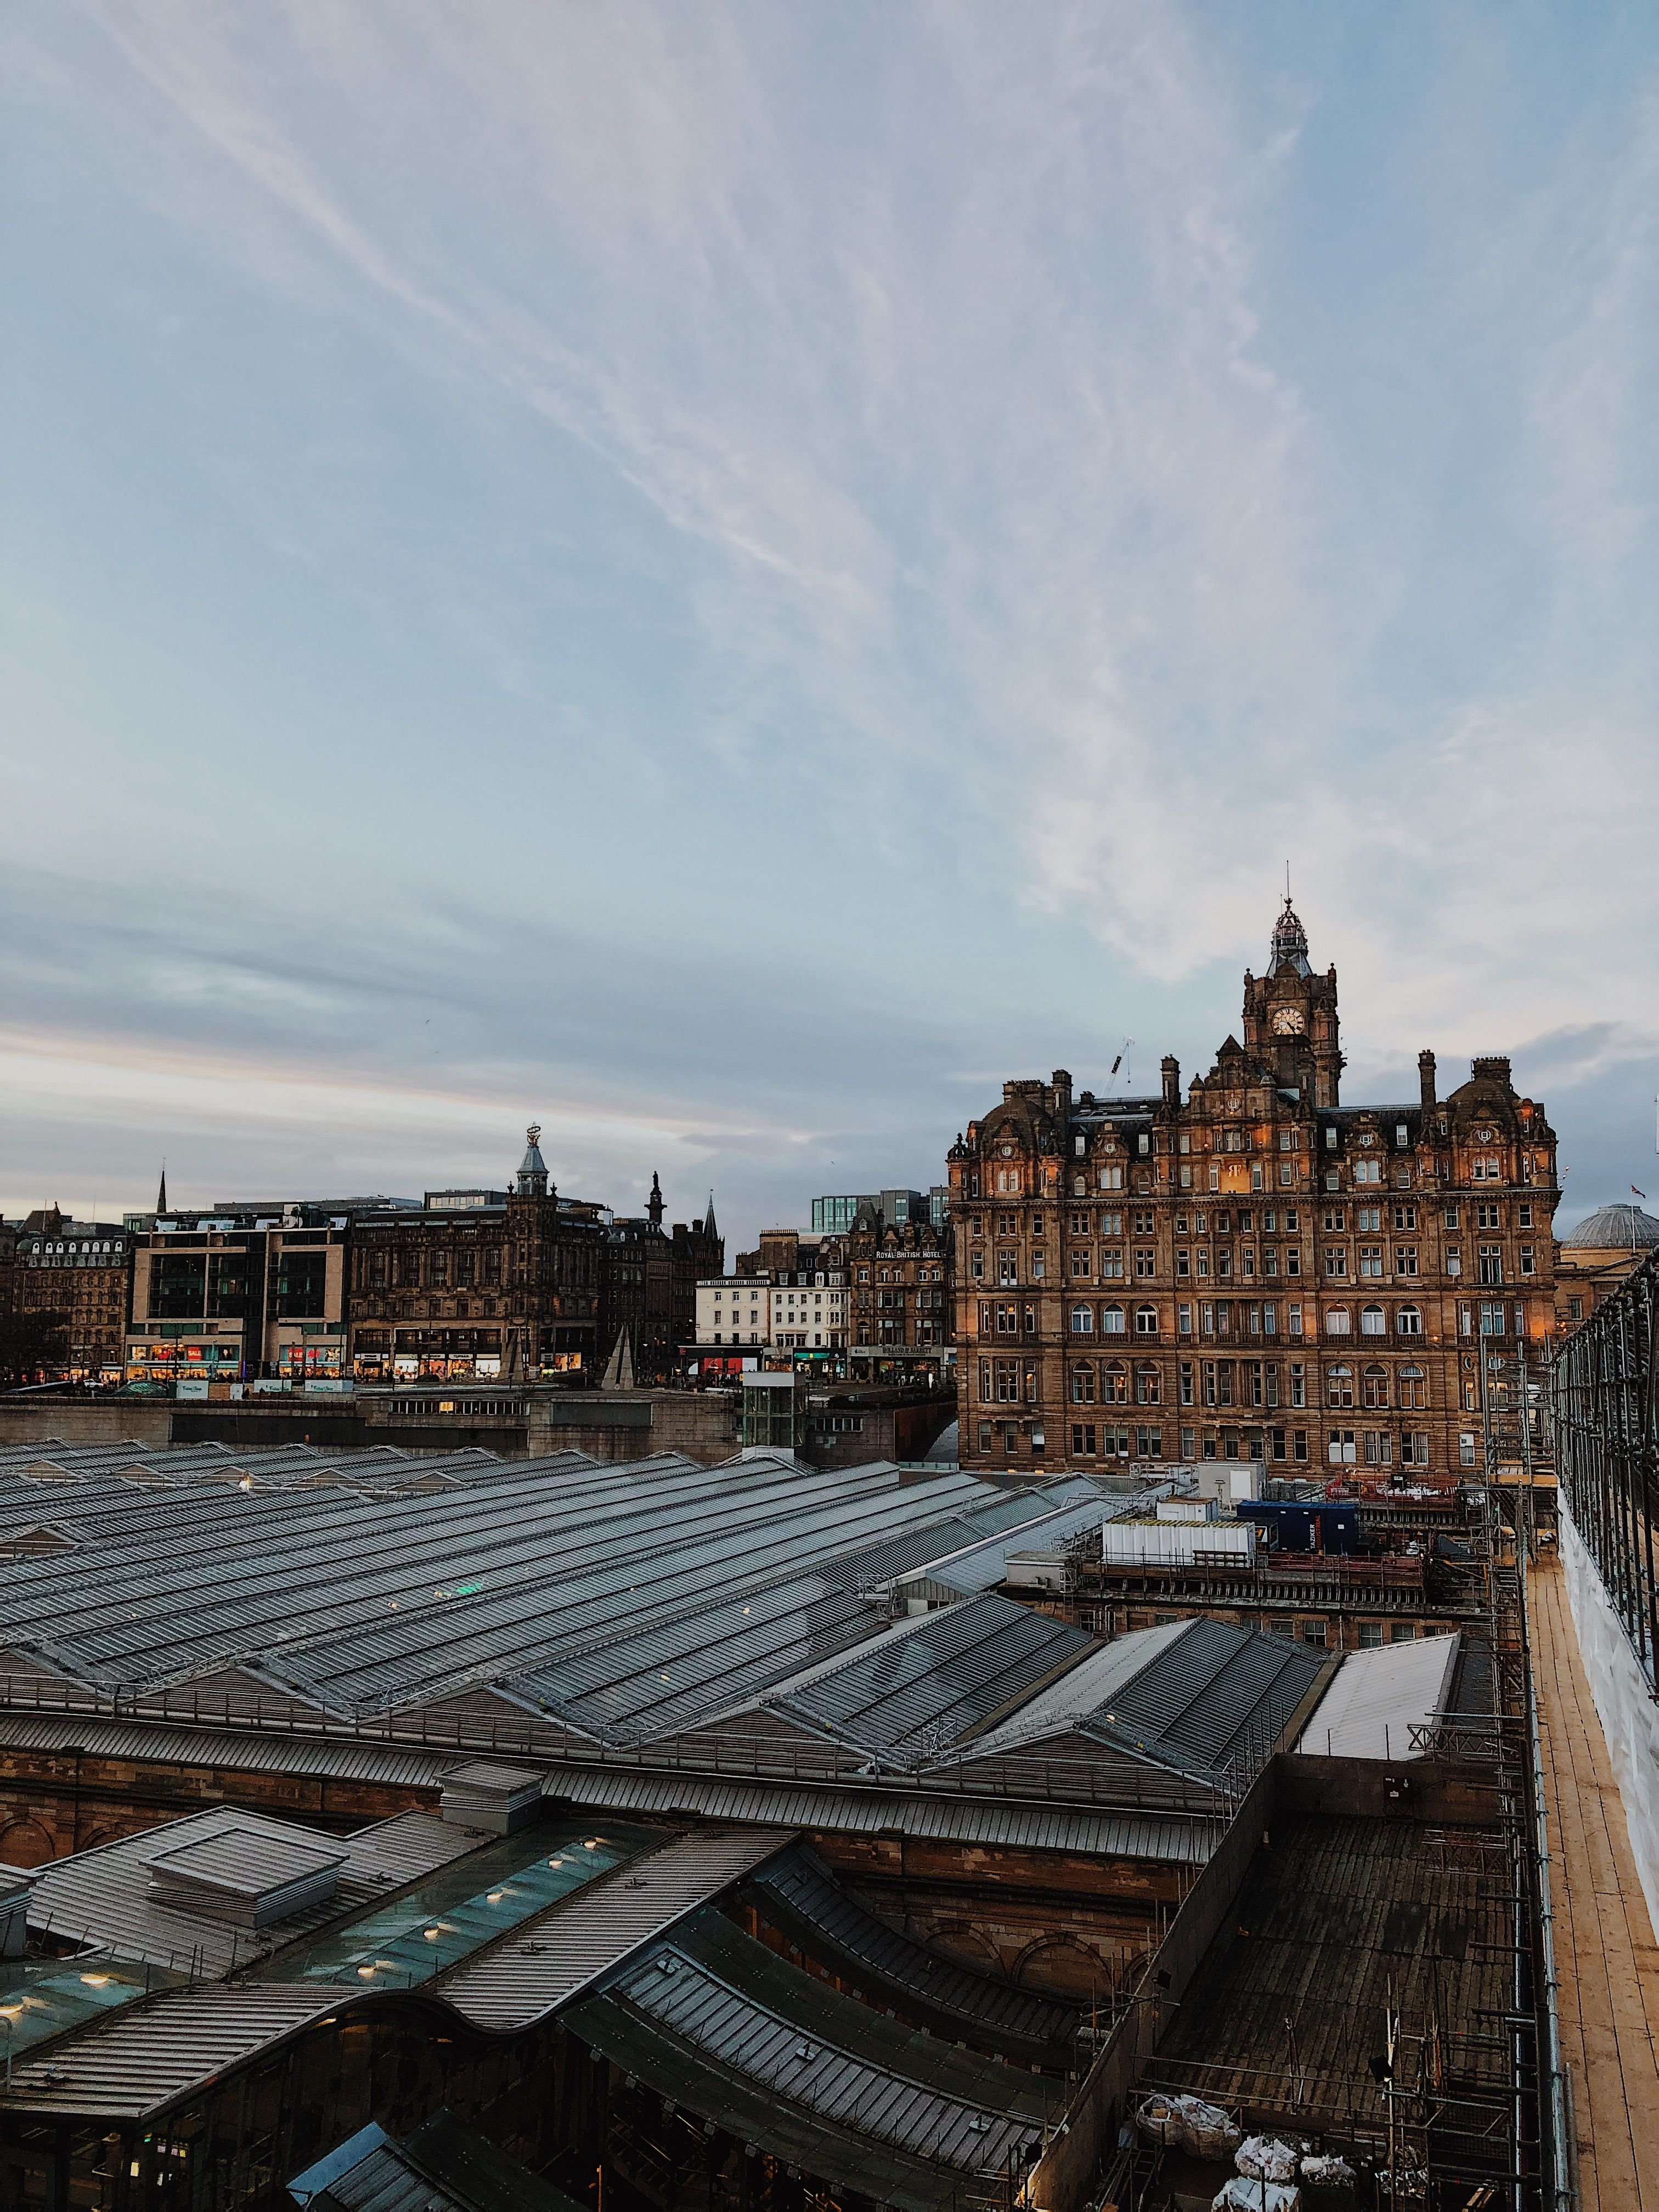 A selection of places in Edinburgh city centre where you can capture a great photo of the city #visitedinburgh #edinburgh #edinburghtravel #thisisedinburgh #edinburghphotography #scotland #thisisscotland #visitscotland #scotlandphotography #travelgram #travelphotography #travelwriter #travelguide #travelblog #travelblogger #worldtravel